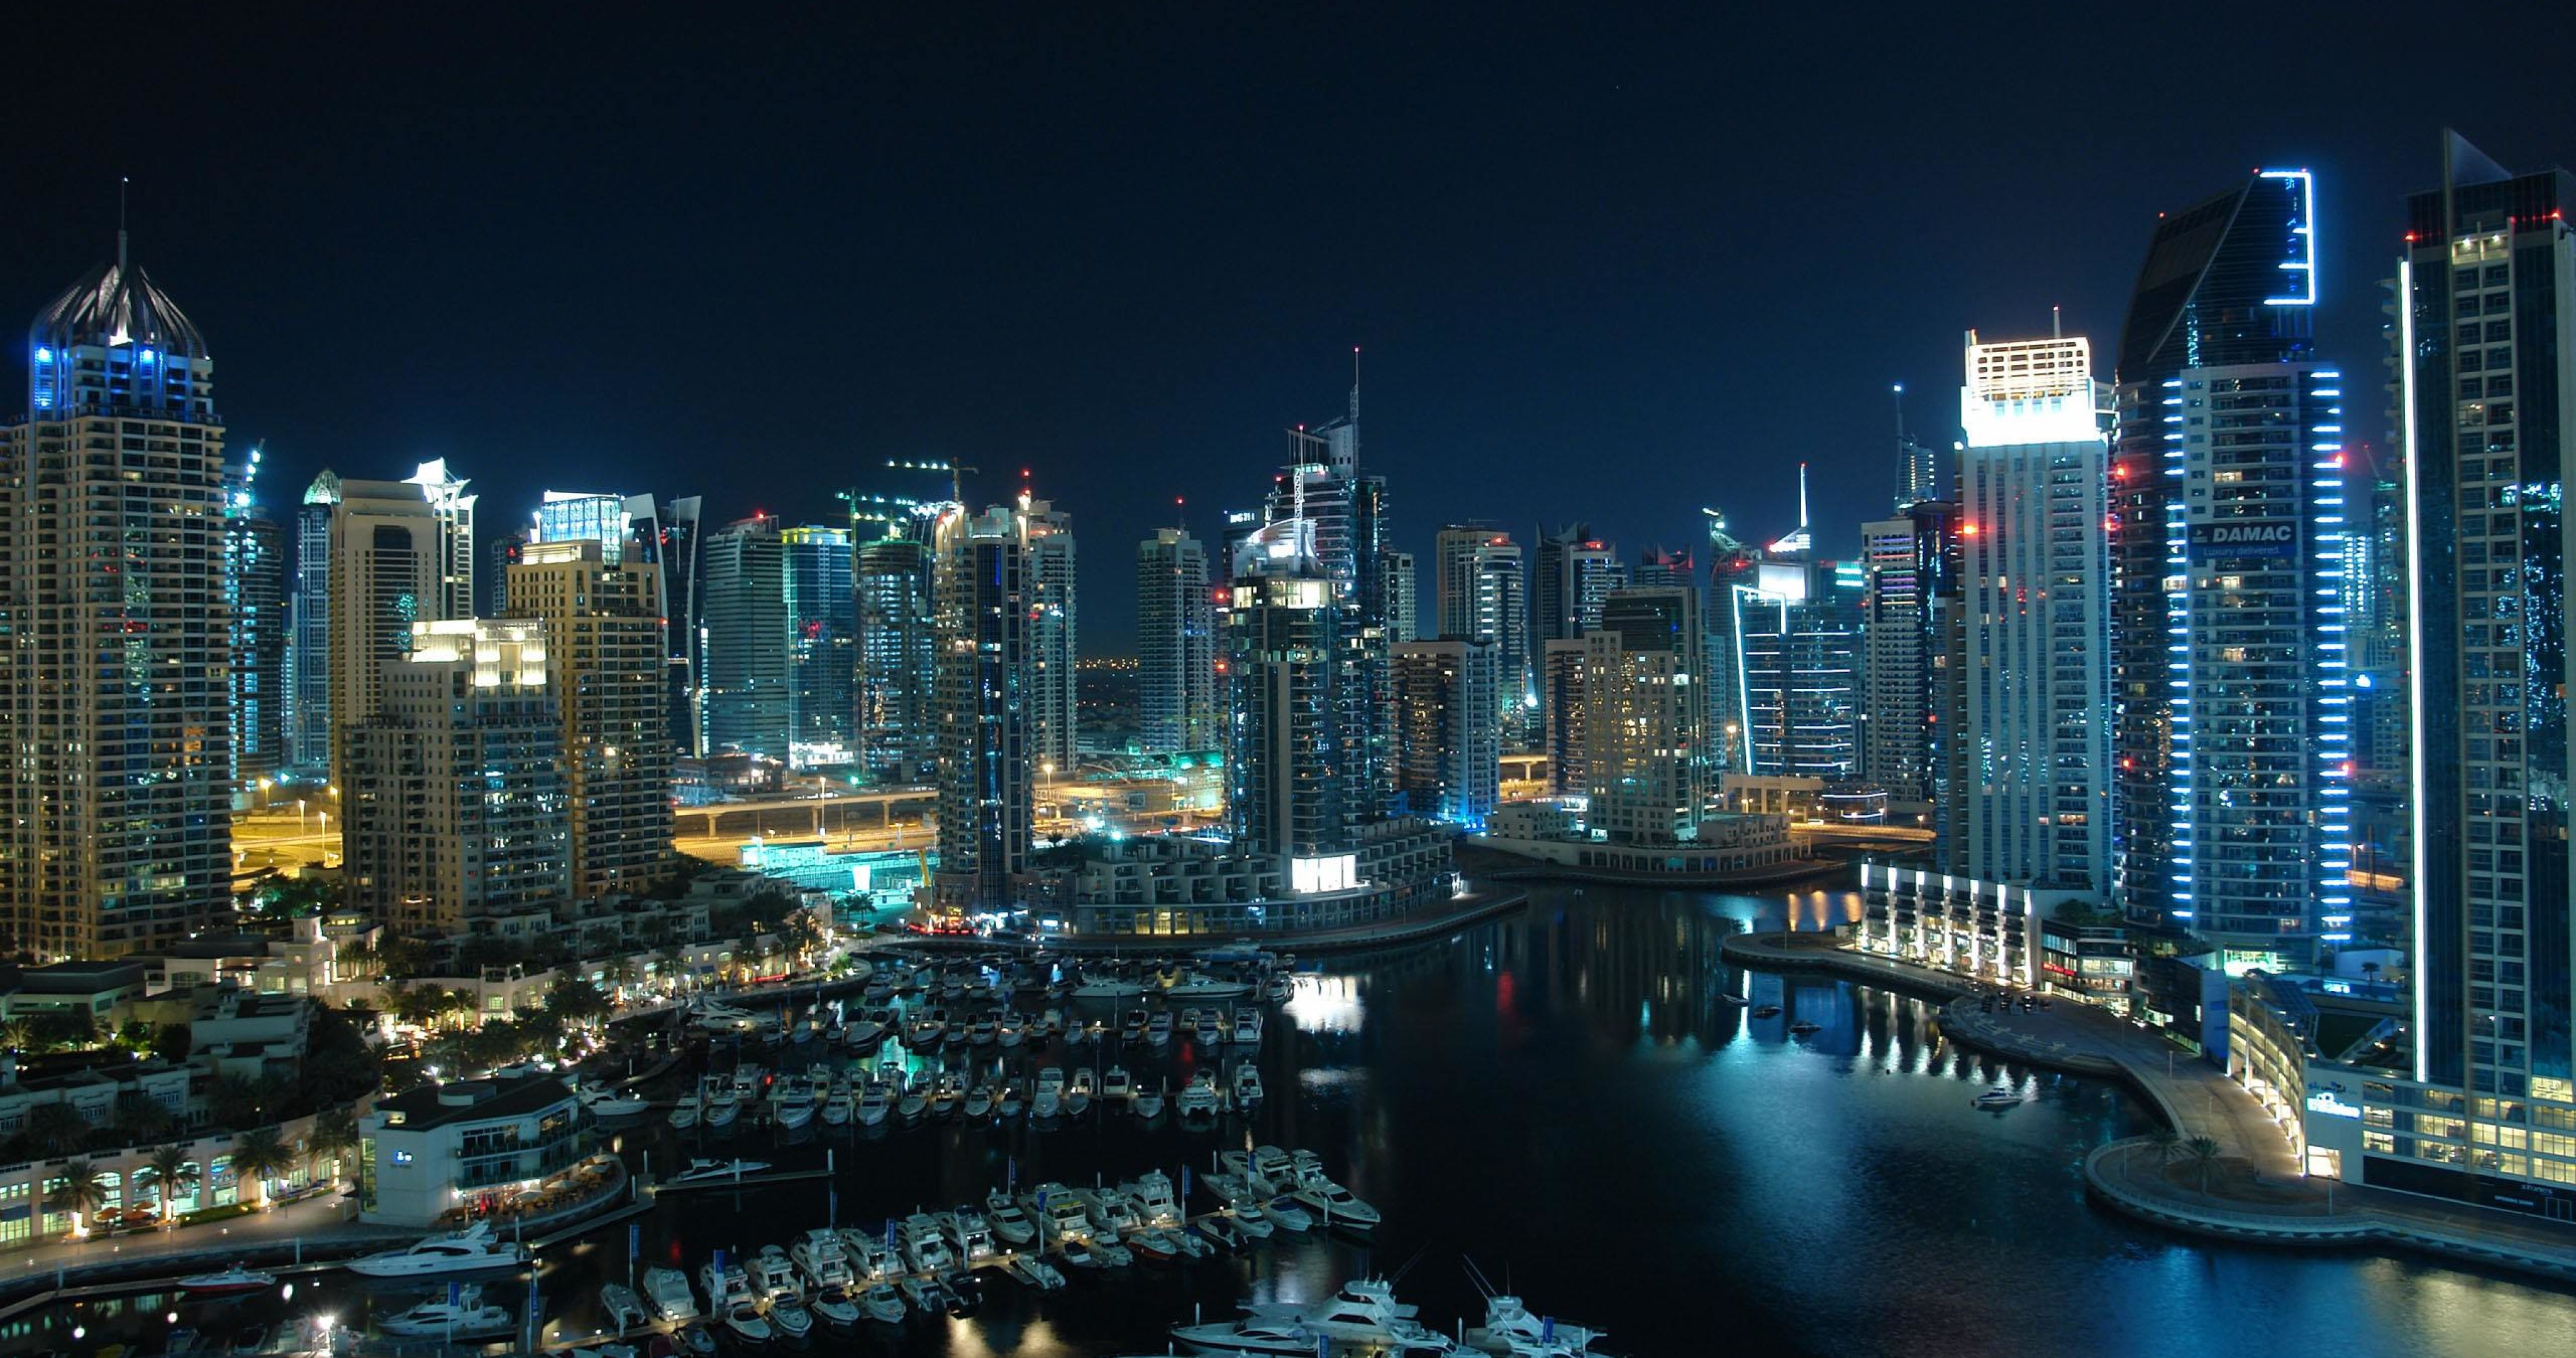 dubai-marina-4k-ultra-hd-wallpaper-wp3405110